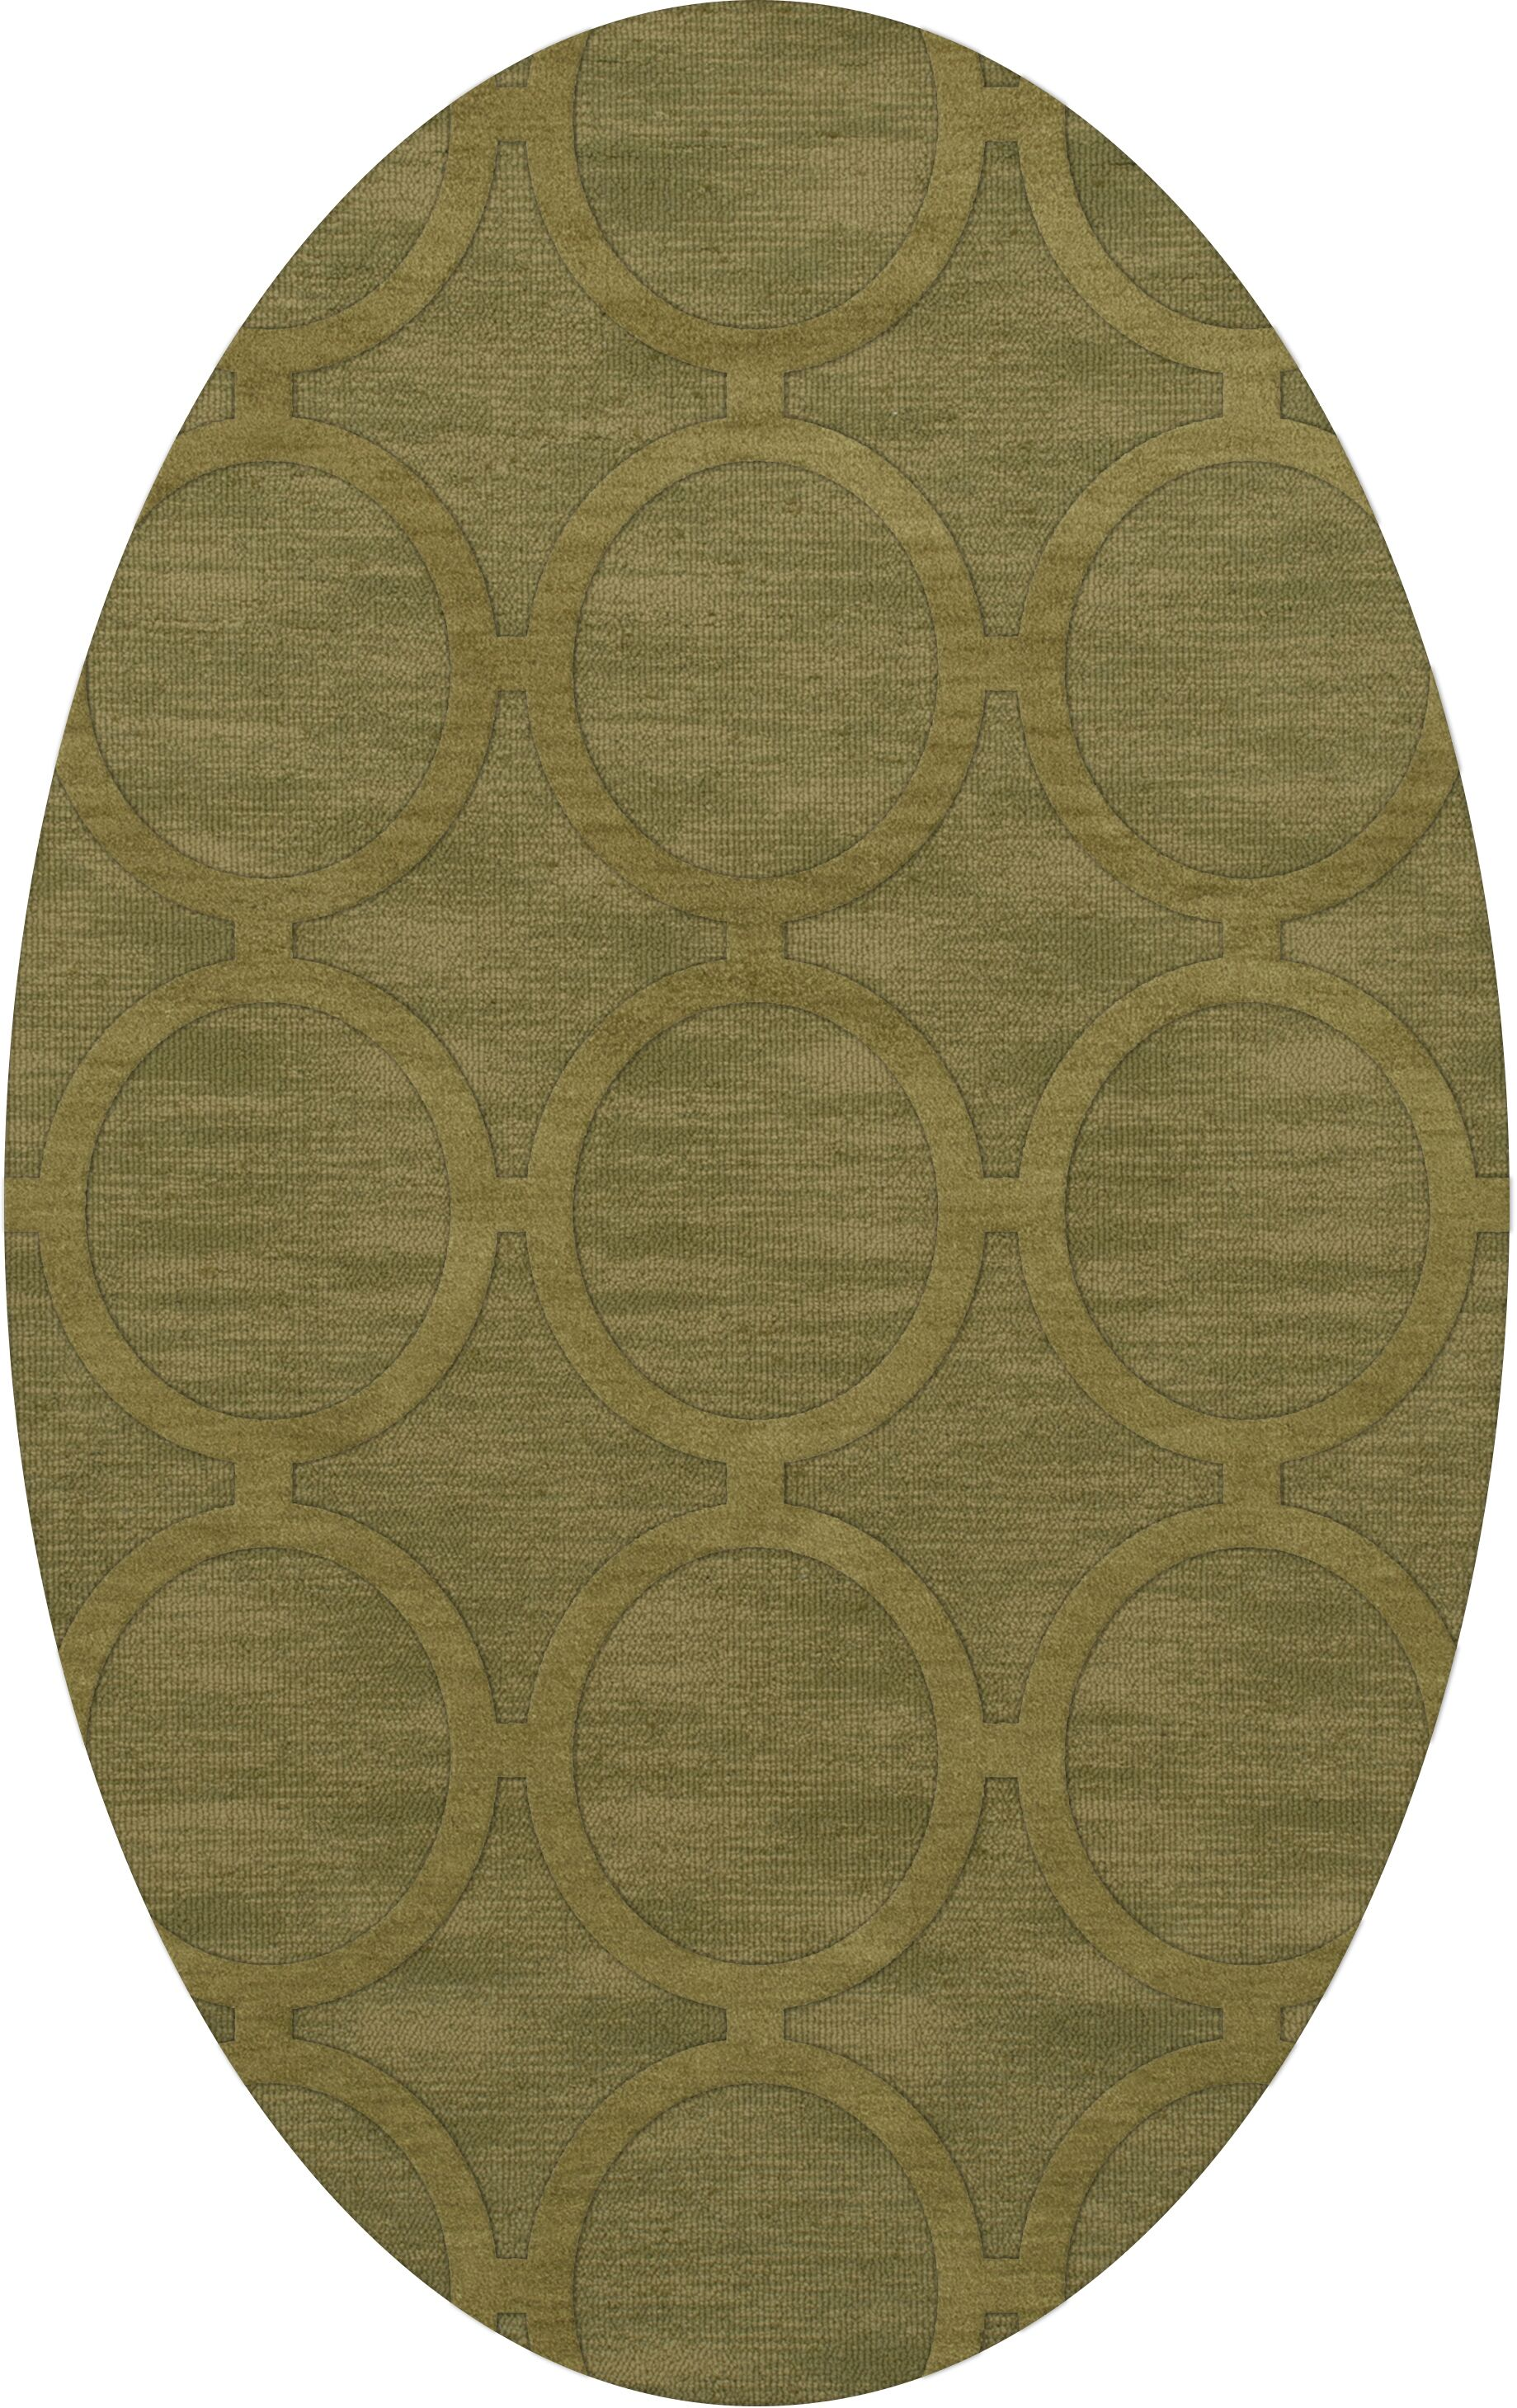 Dover Tufted Wool Pear Area Rug Rug Size: Oval 8' x 10'